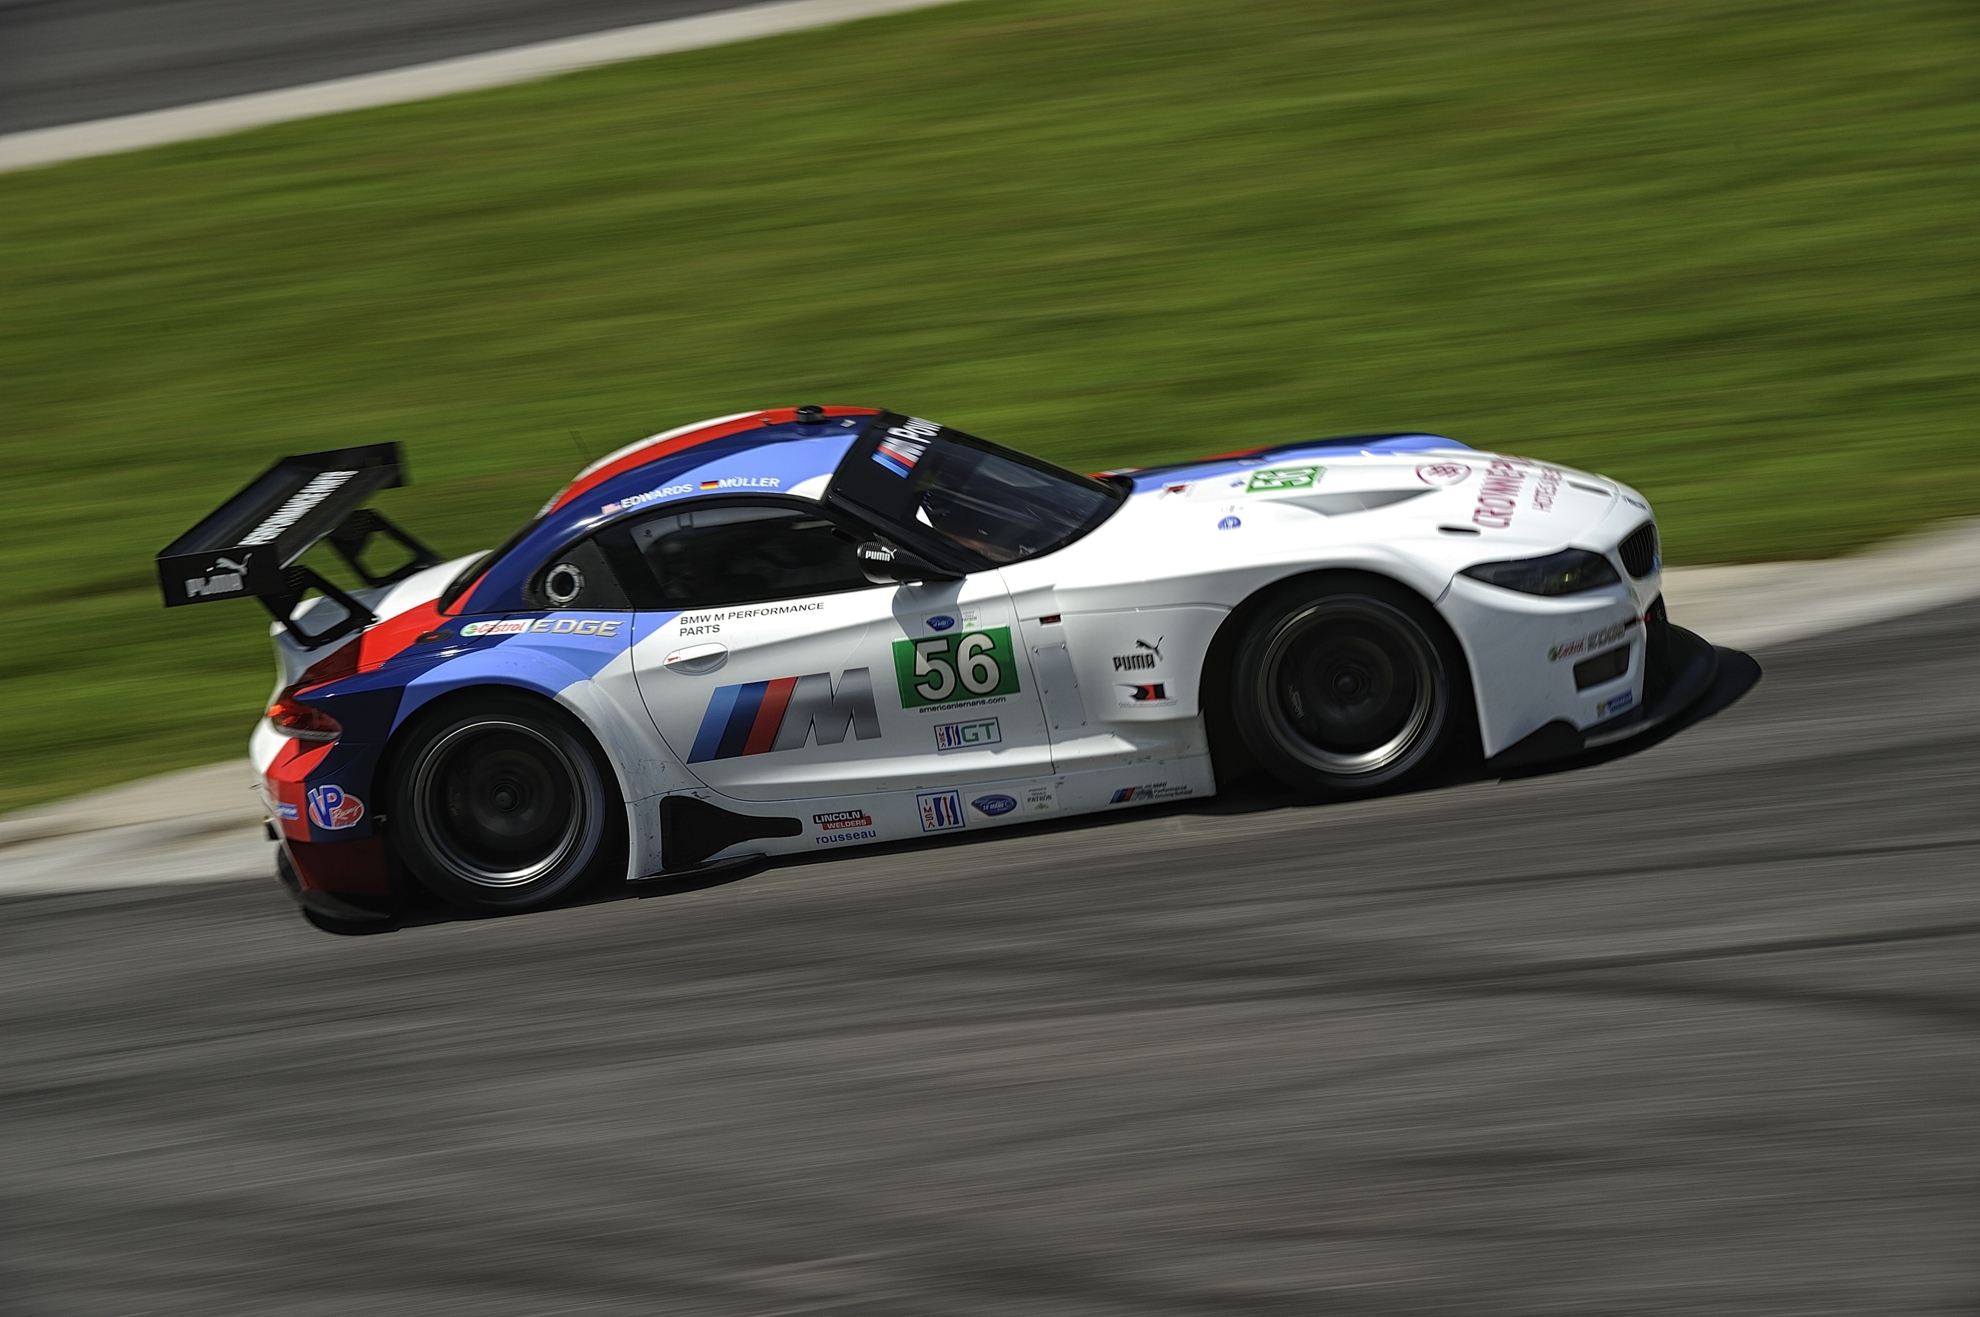 Bmw Team Rll Sweeps Northeast Grand Prix Gt Front Row John Edwards Drives To First Pole Of Bmw